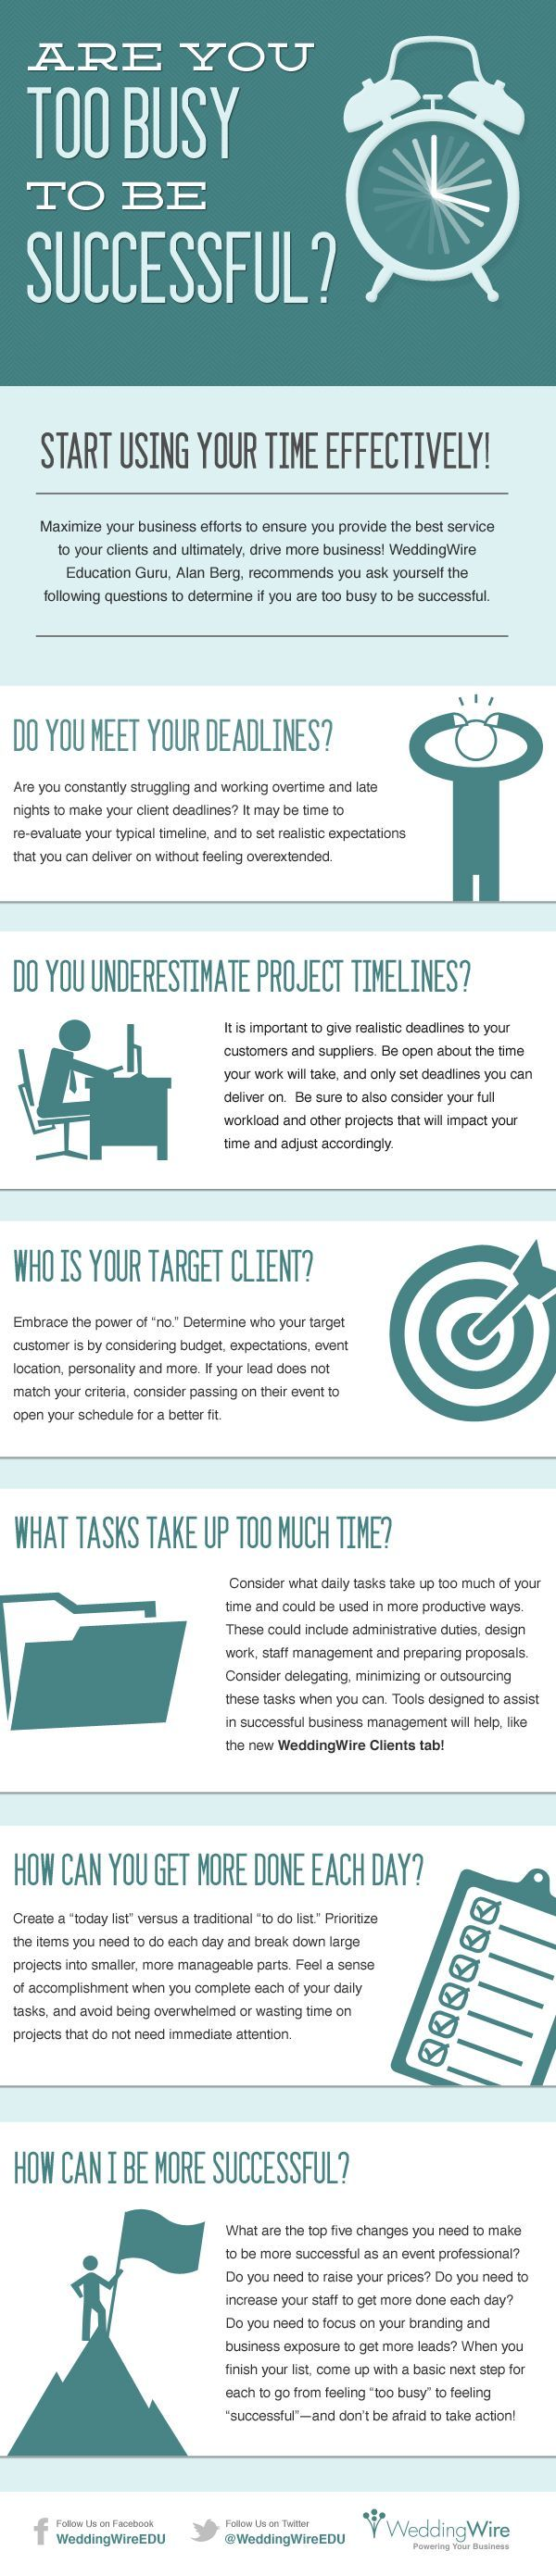 "Are You Too Busy To Be Successful - <a class=""pintag"" href=""/explore/infographic/"" title=""#infographic explore Pinterest"">#infographic</a> <a class=""pintag searchlink"" data-query=""#Success"" data-type=""hashtag"" href=""/search/?q=#Success&rs=hashtag"" rel=""nofollow"" title=""#Success search Pinterest"">#Success</a>"